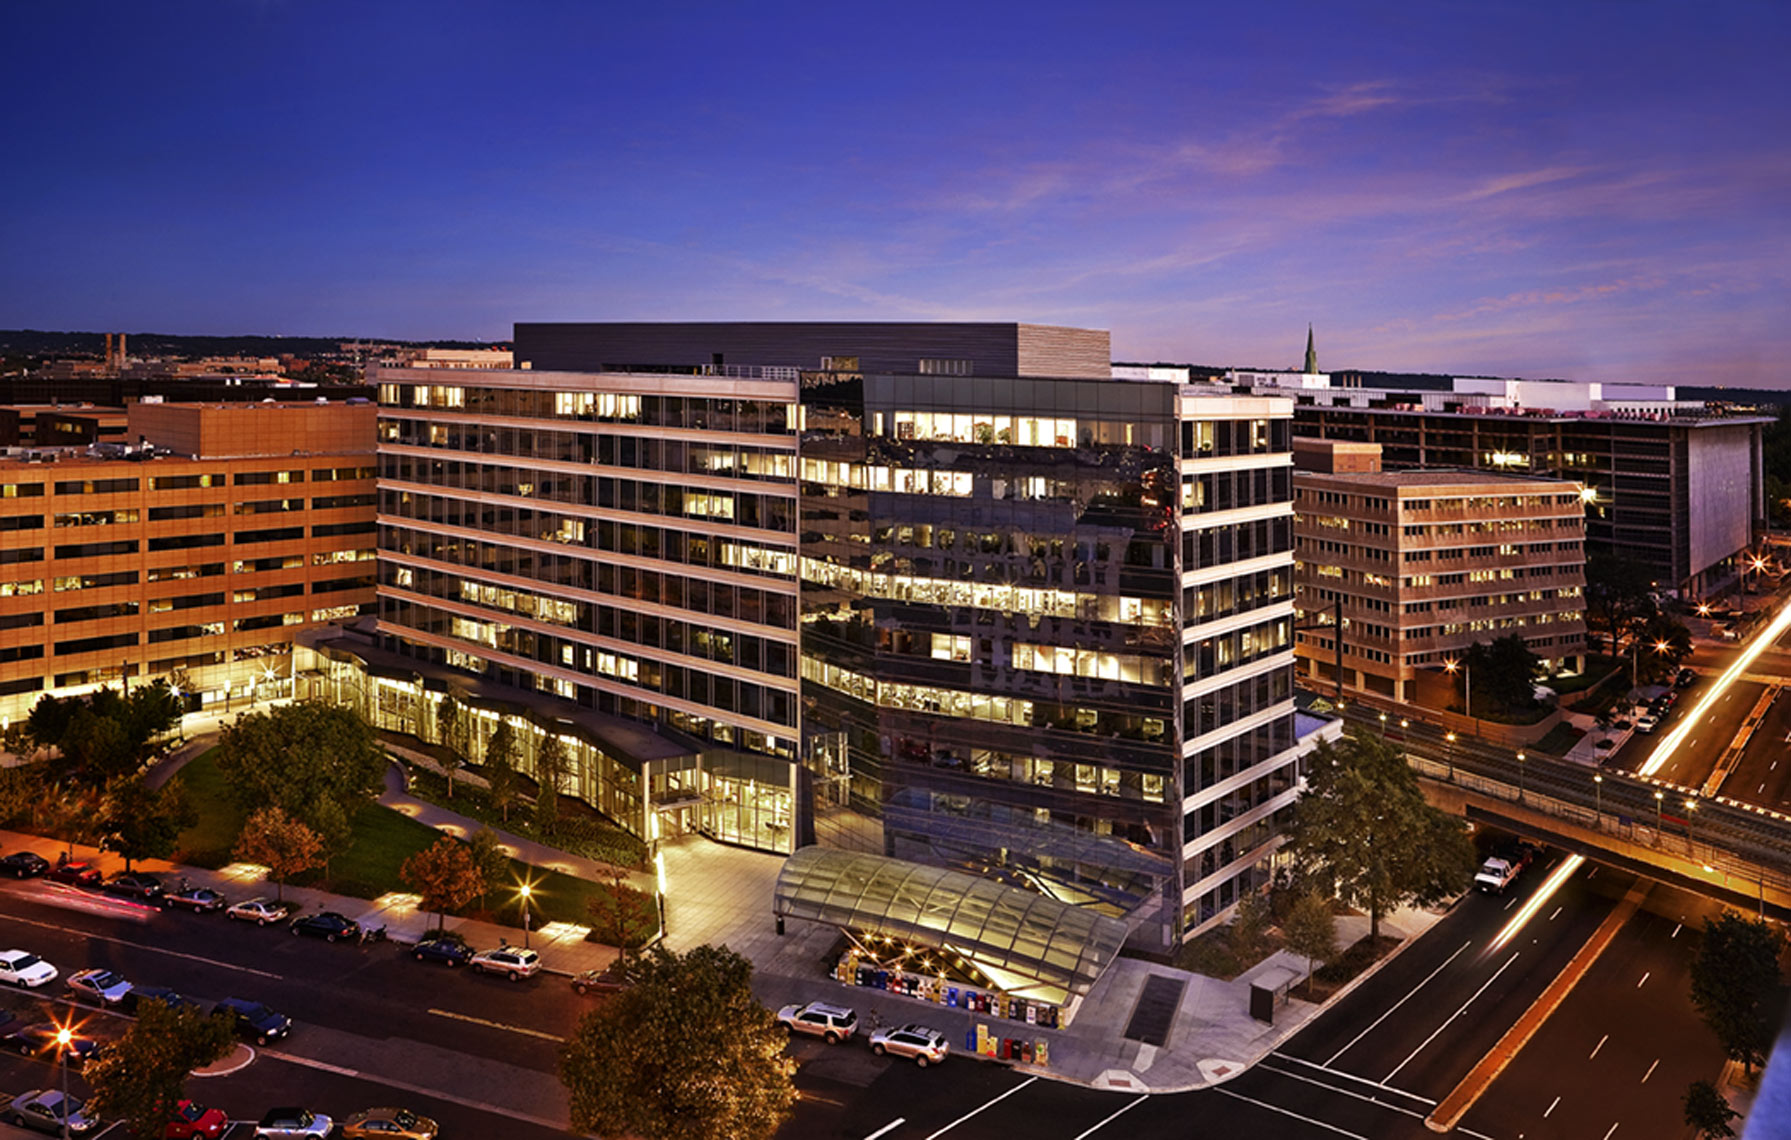 Architectural photograph of an office building in DC at dusk